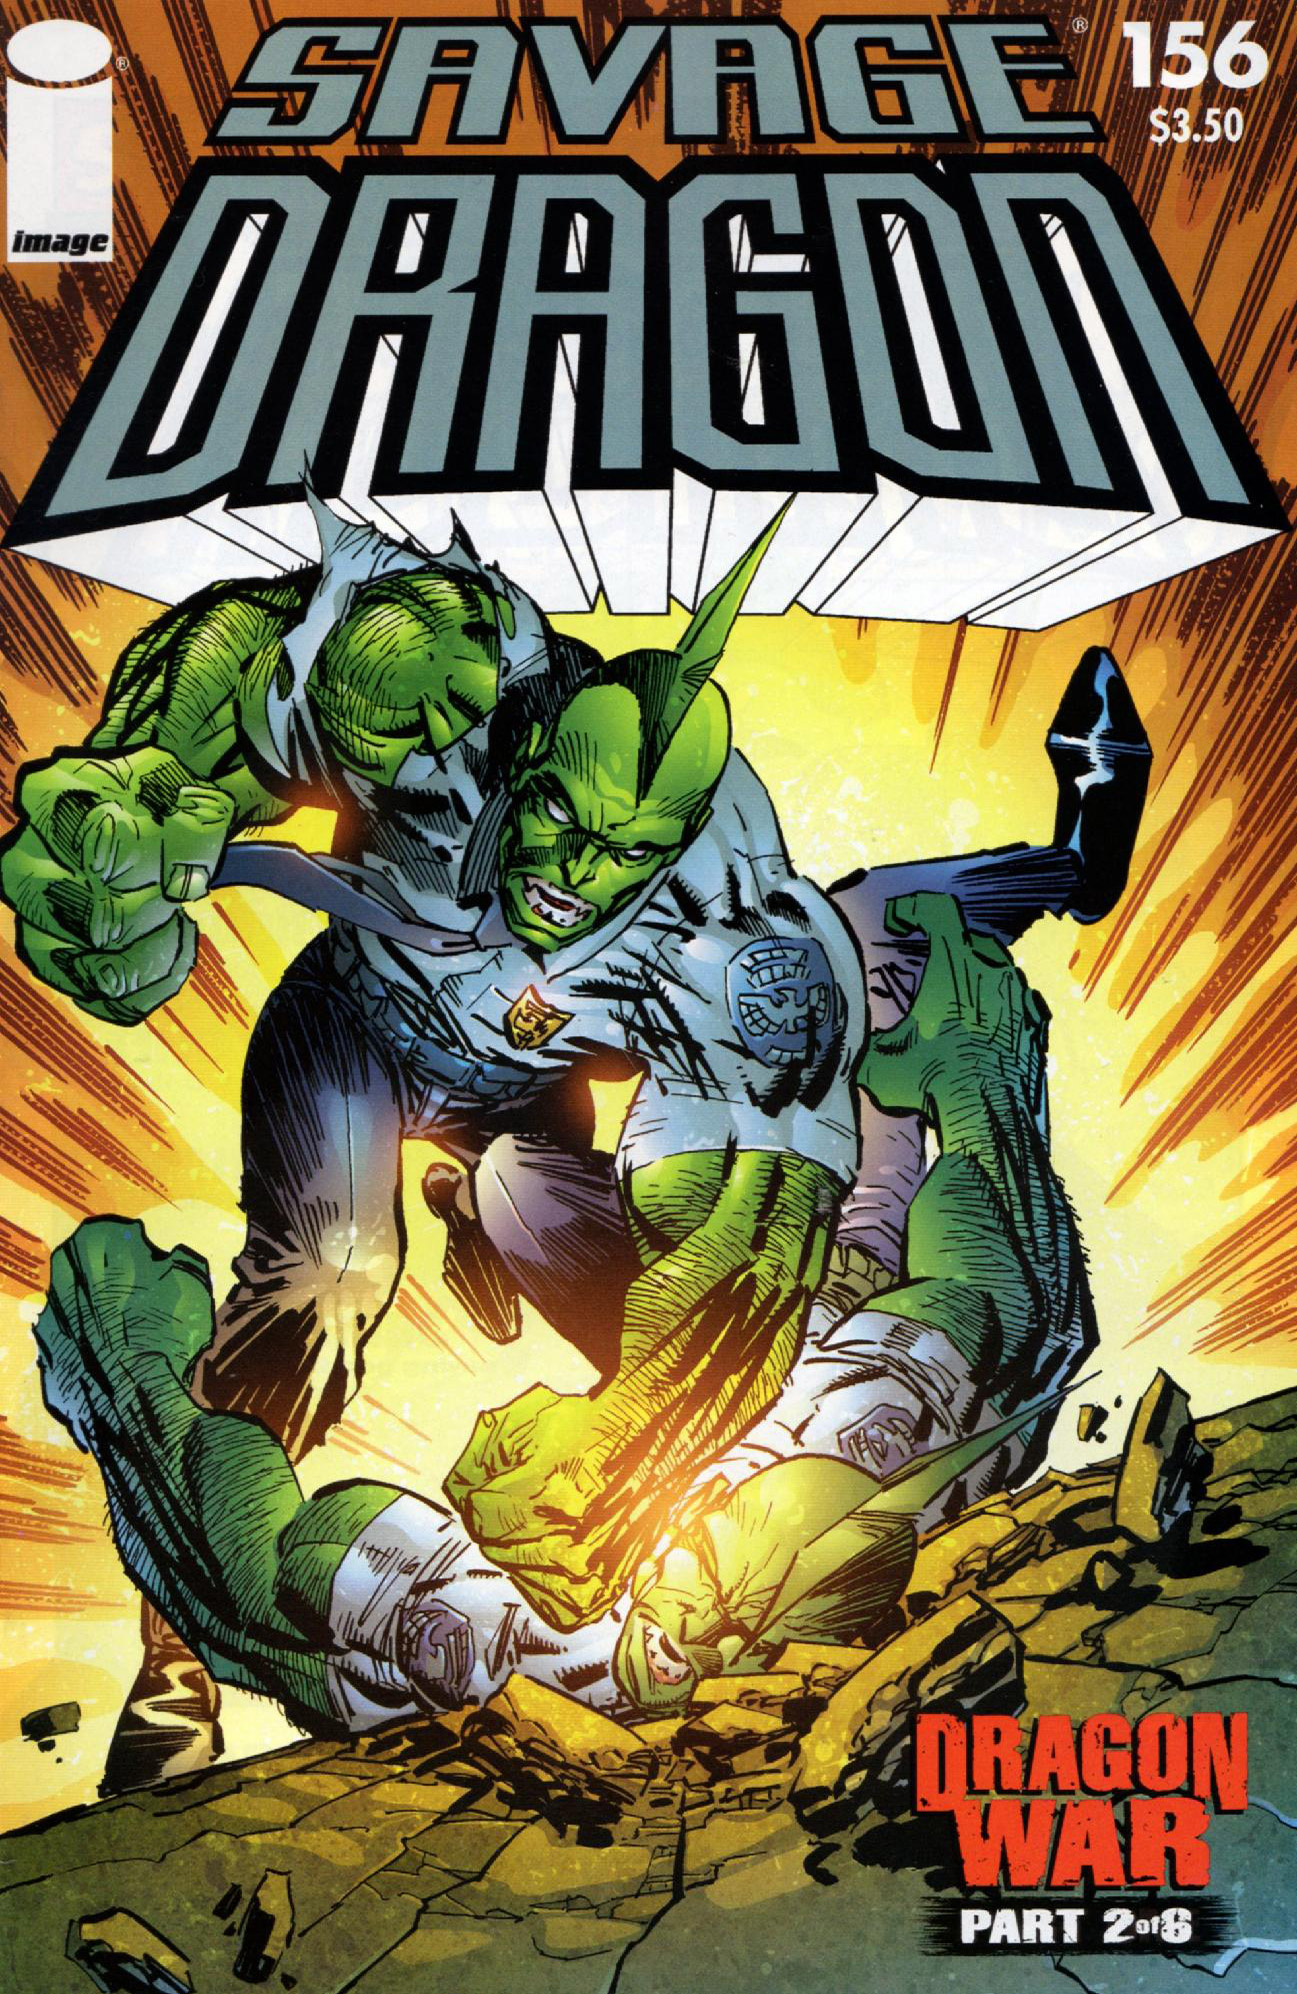 Cover Savage Dragon Vol.2 #156